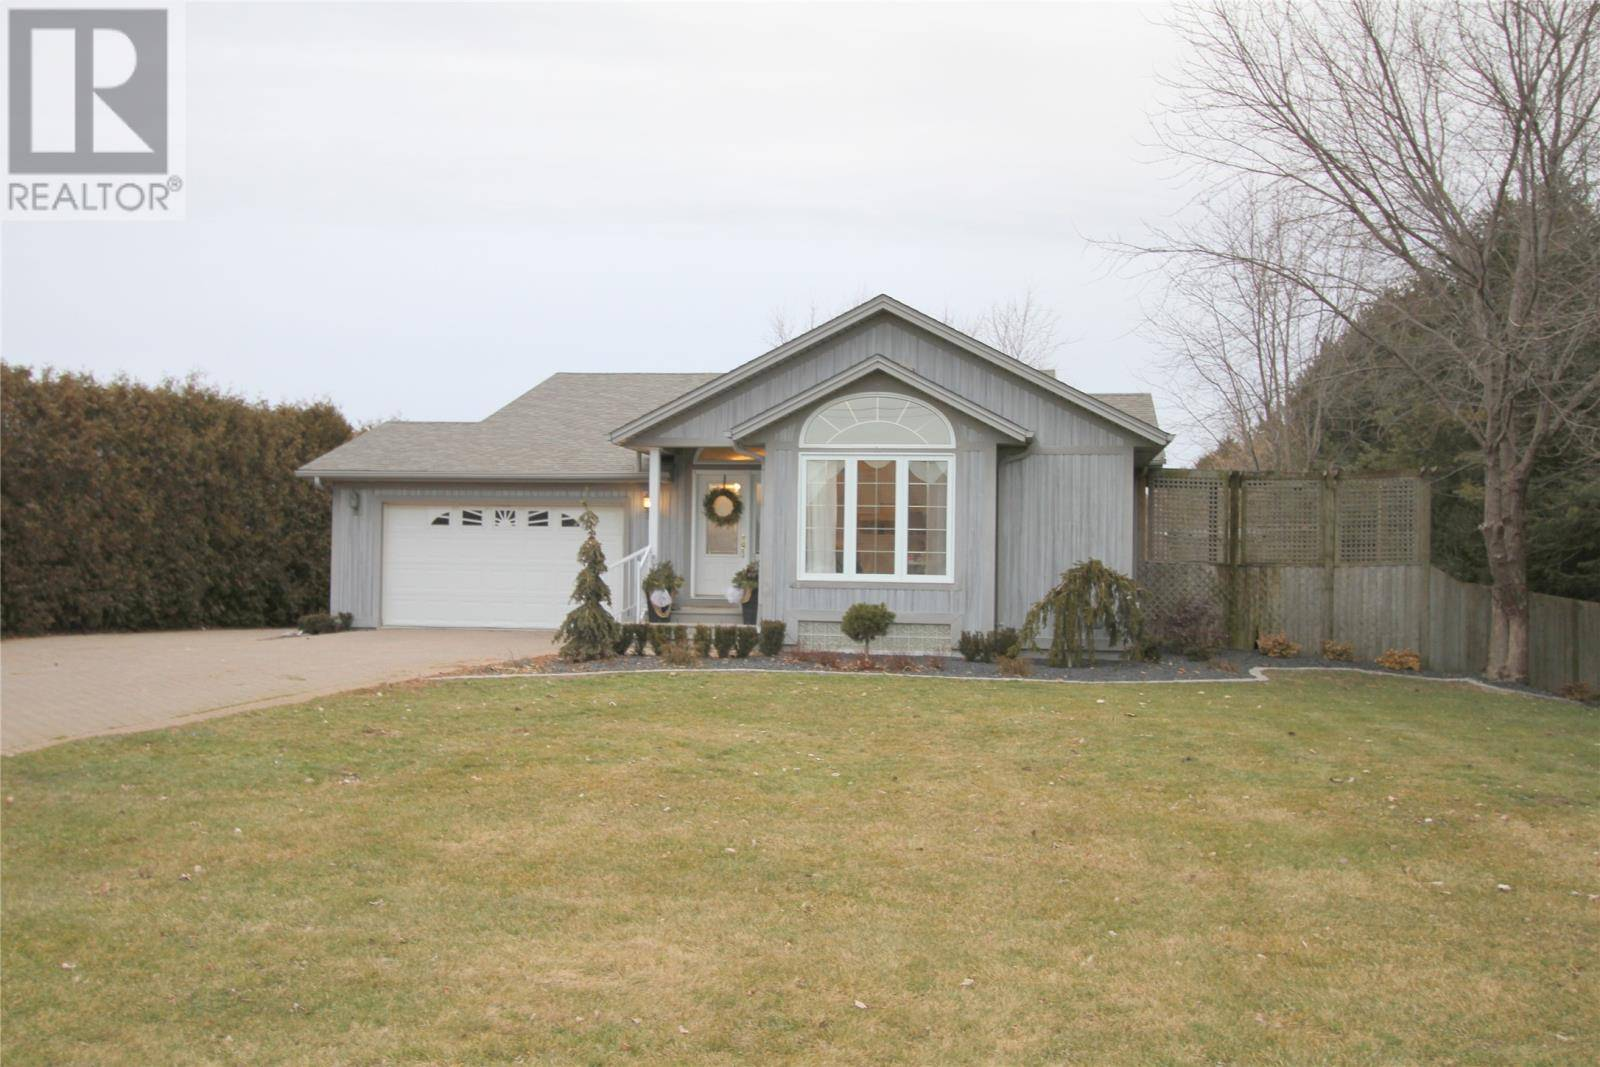 House for sale at 221 Mersea Rd 3  Leamington Ontario - MLS: 20001555